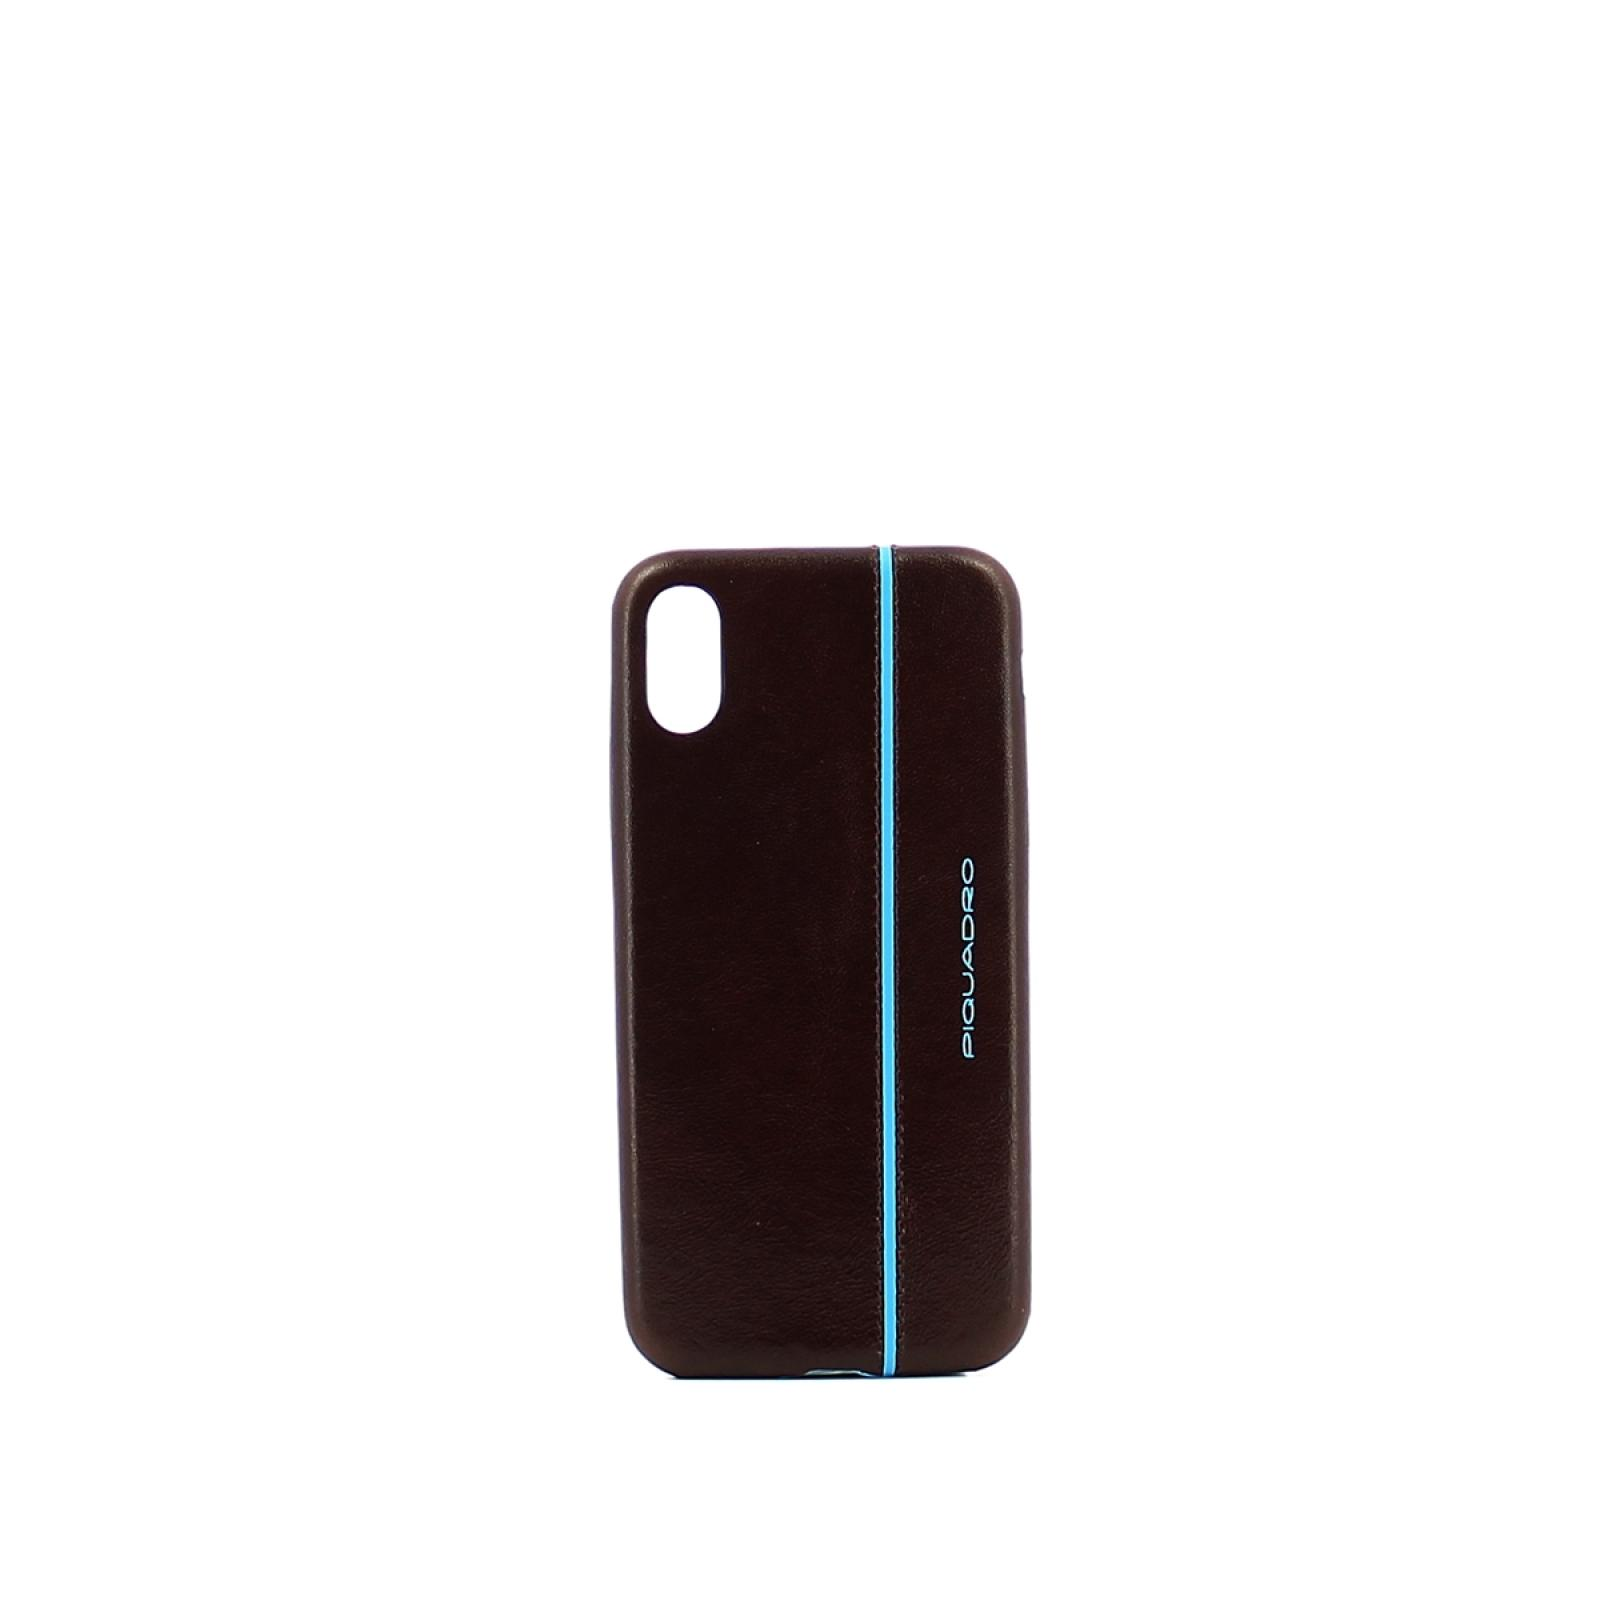 iPhone®X leather case Blue Square